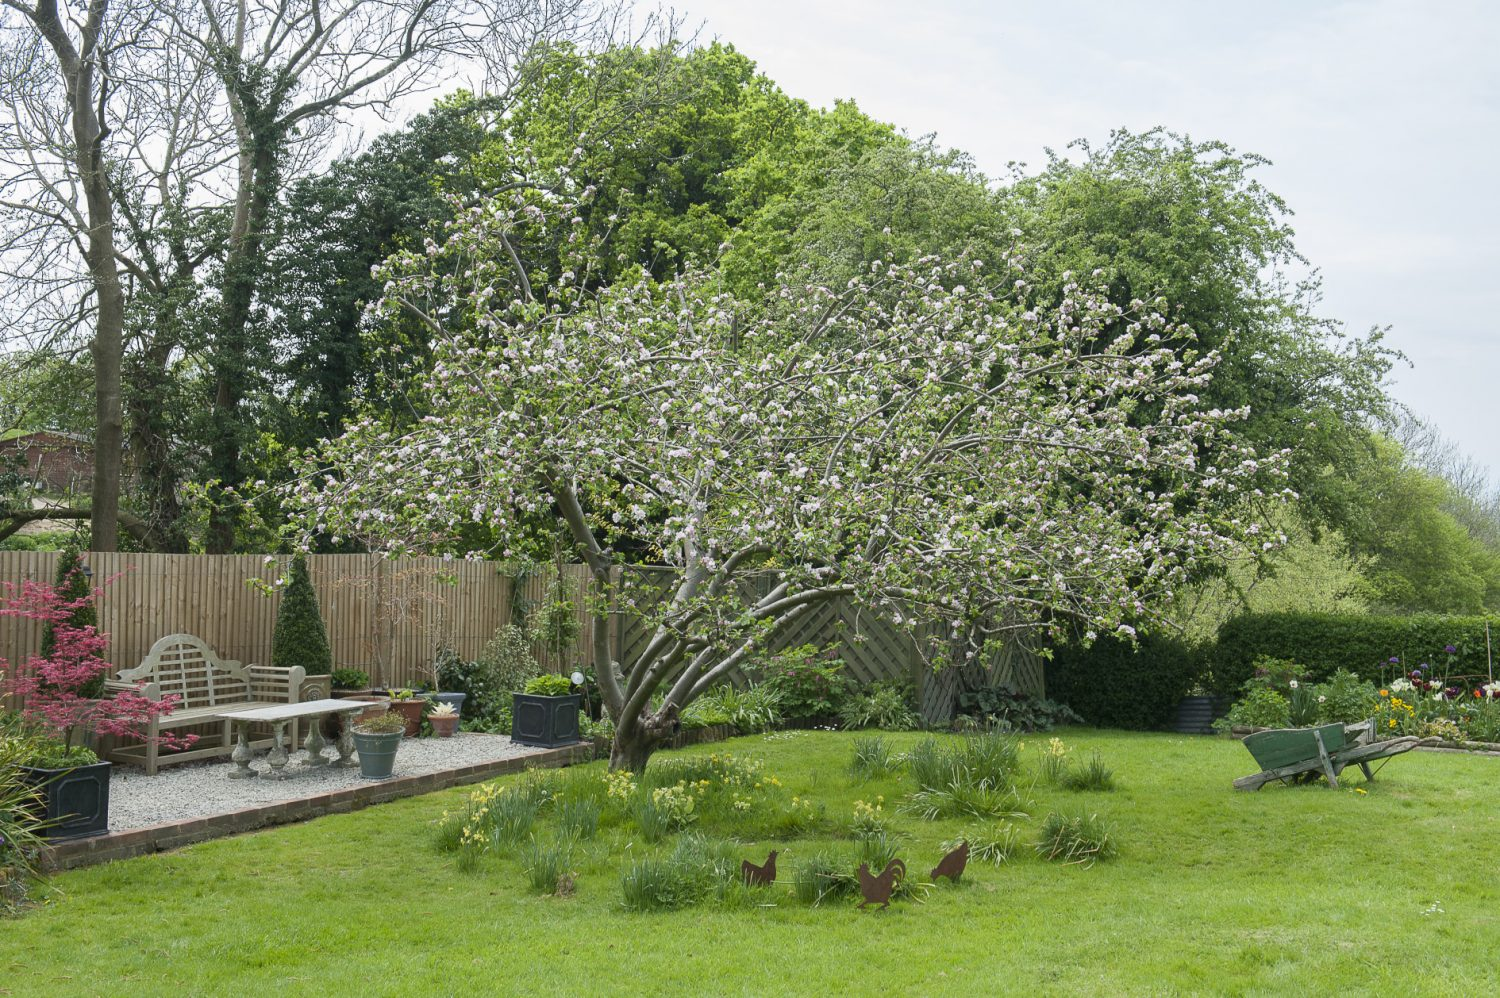 The sheltered back garden, where Simon – who is a keen gardener – spends much of his time, looks out over the quintessential High Weald landscape